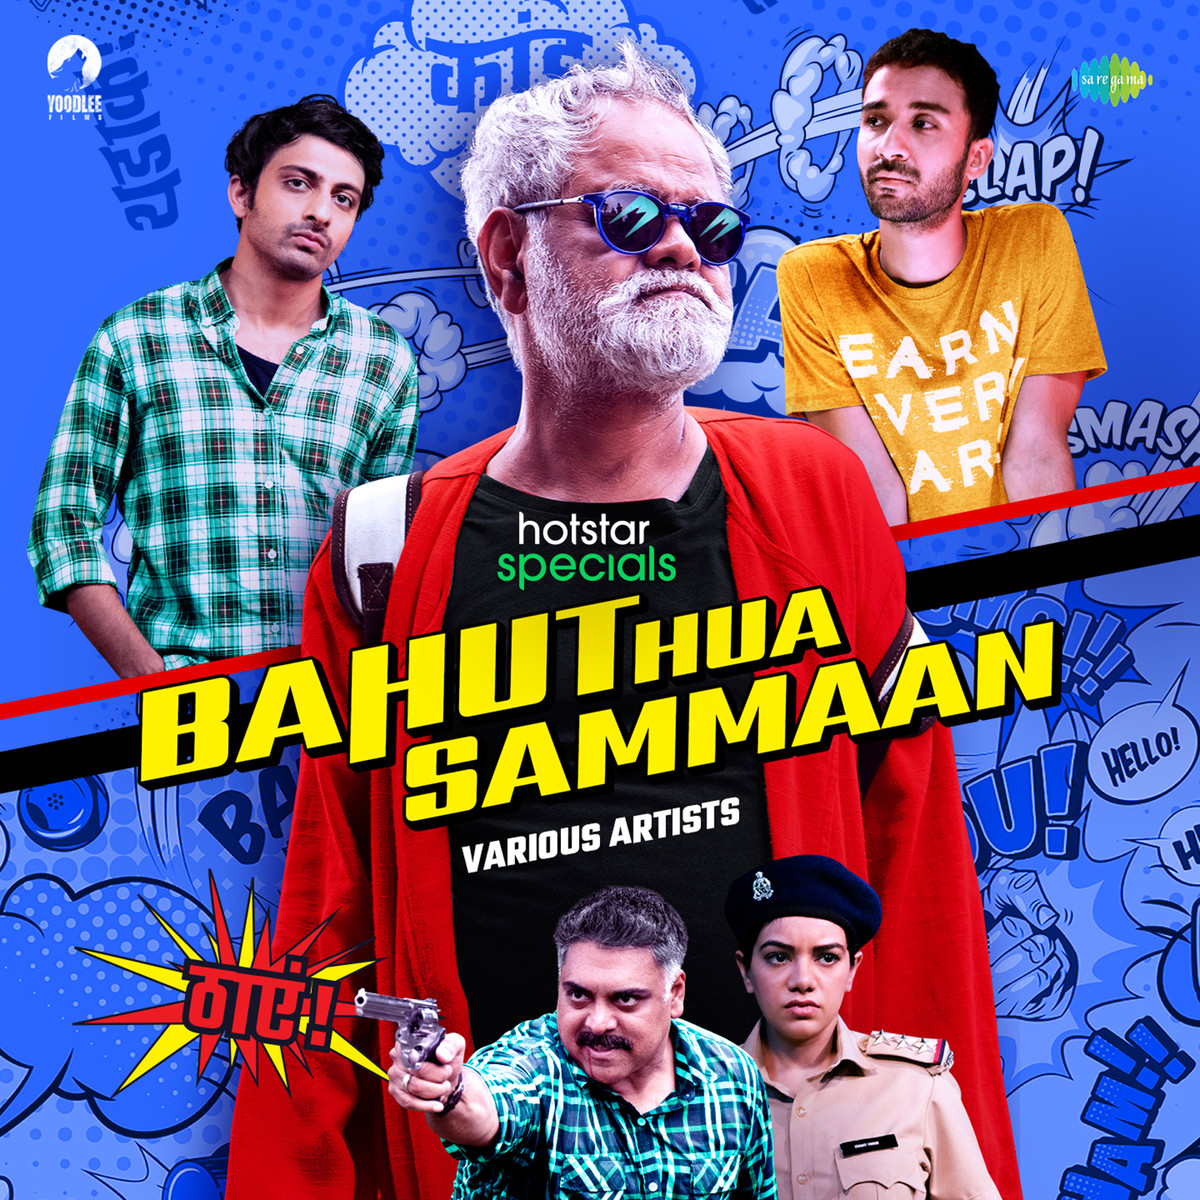 Bahut Hua Sammaan Songs Download: Bahut Hua Sammaan MP3 Songs Online Free on Gaana.com